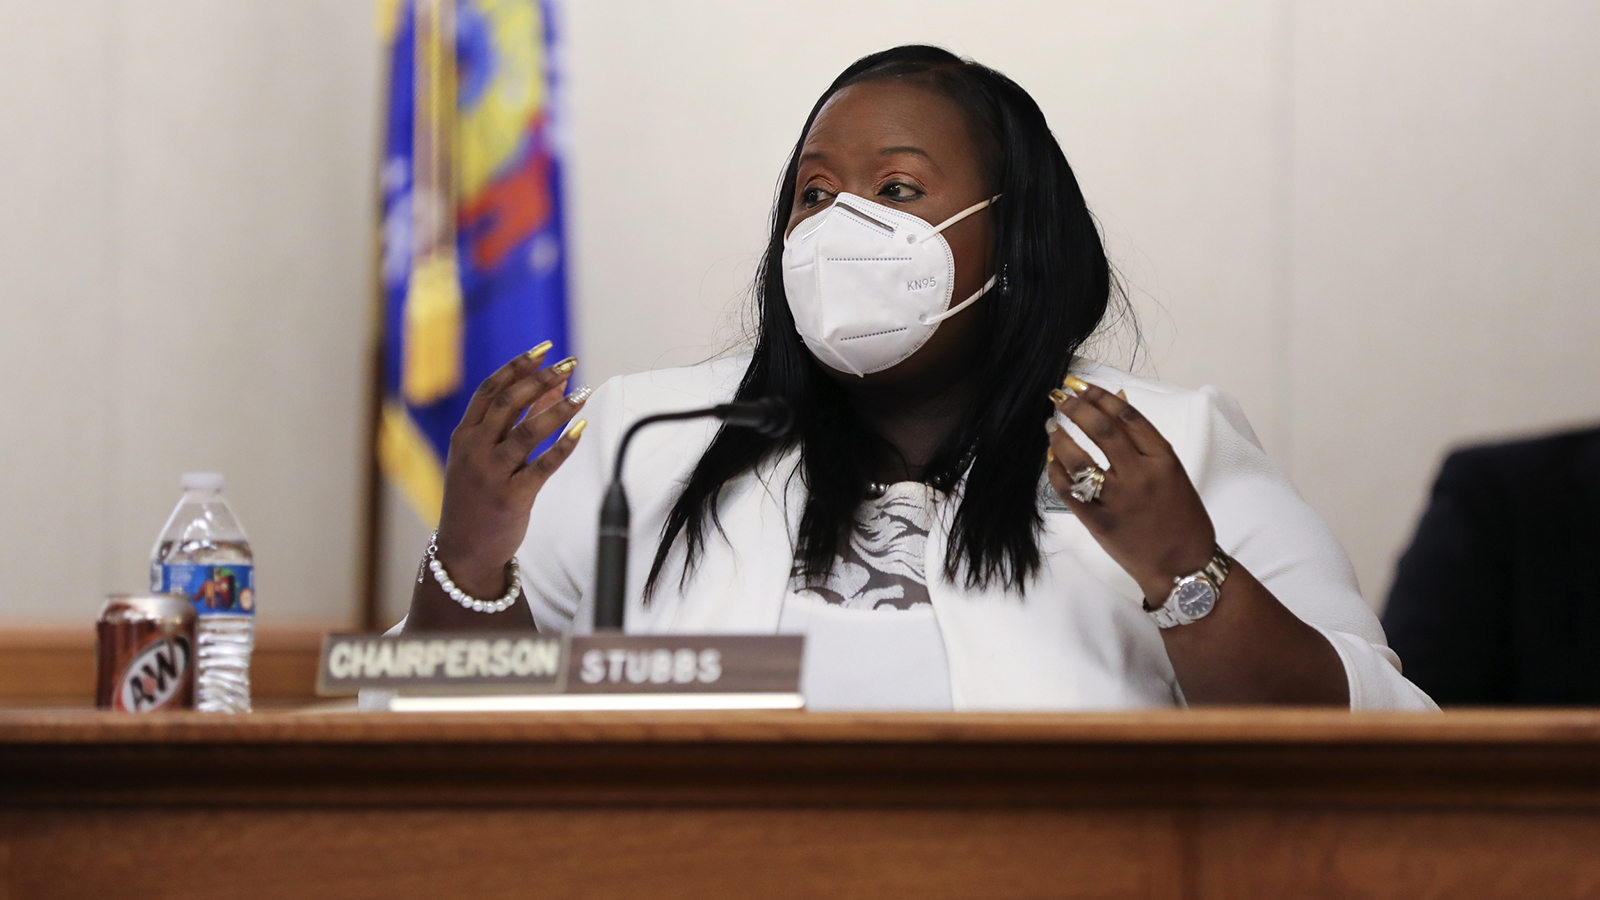 Shelia Stubbs wearing face mask at hearing table in Wisconsin Capitol